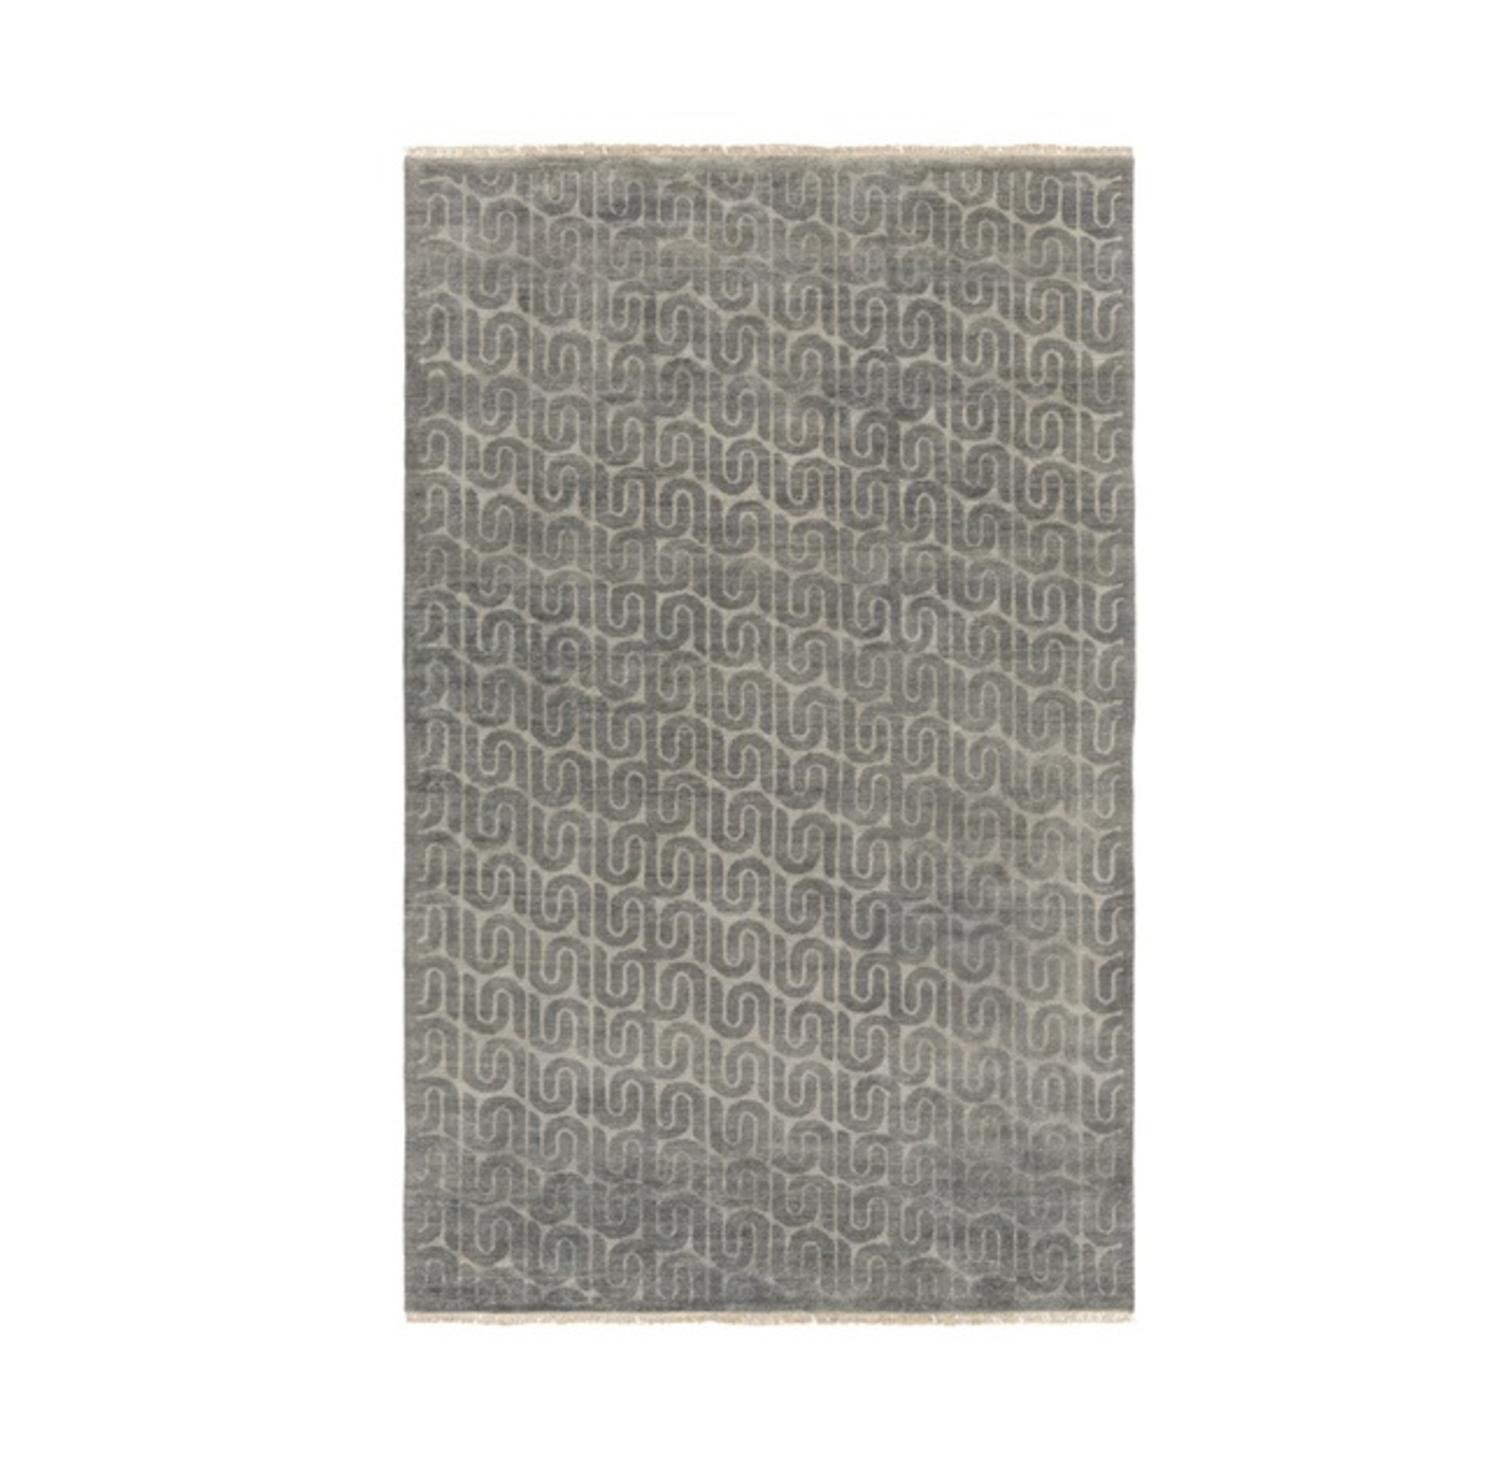 Diva At Home Diva At Home 6 X 9 Pirouette Dark Granite And Light Silver Sand Gray Hand Knotted Area Throw Rug